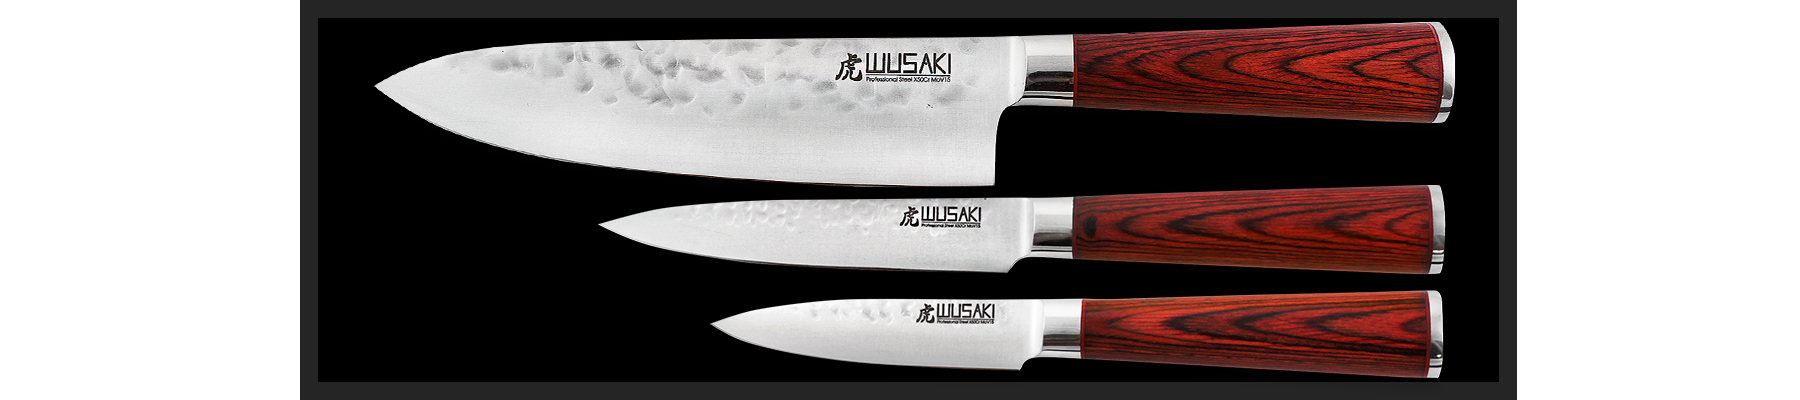 Wusaki Pakka X50 Set with 1 Chef knife + 1 utility knife + 1 paring knife